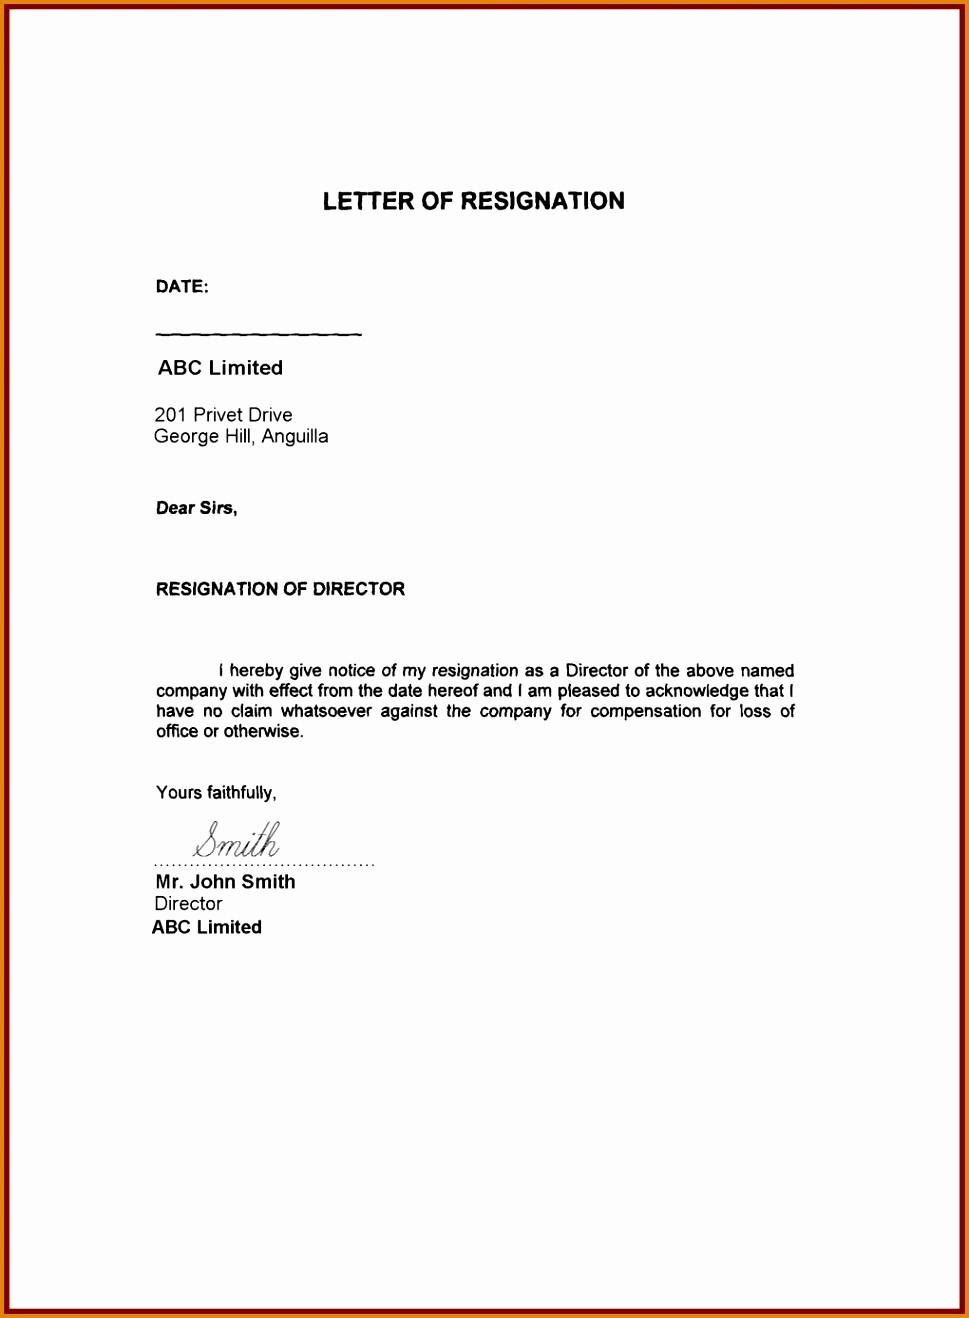 Letter Of Resignation Template Download Fresh Resign Letter Example Sample Resignation Letter format